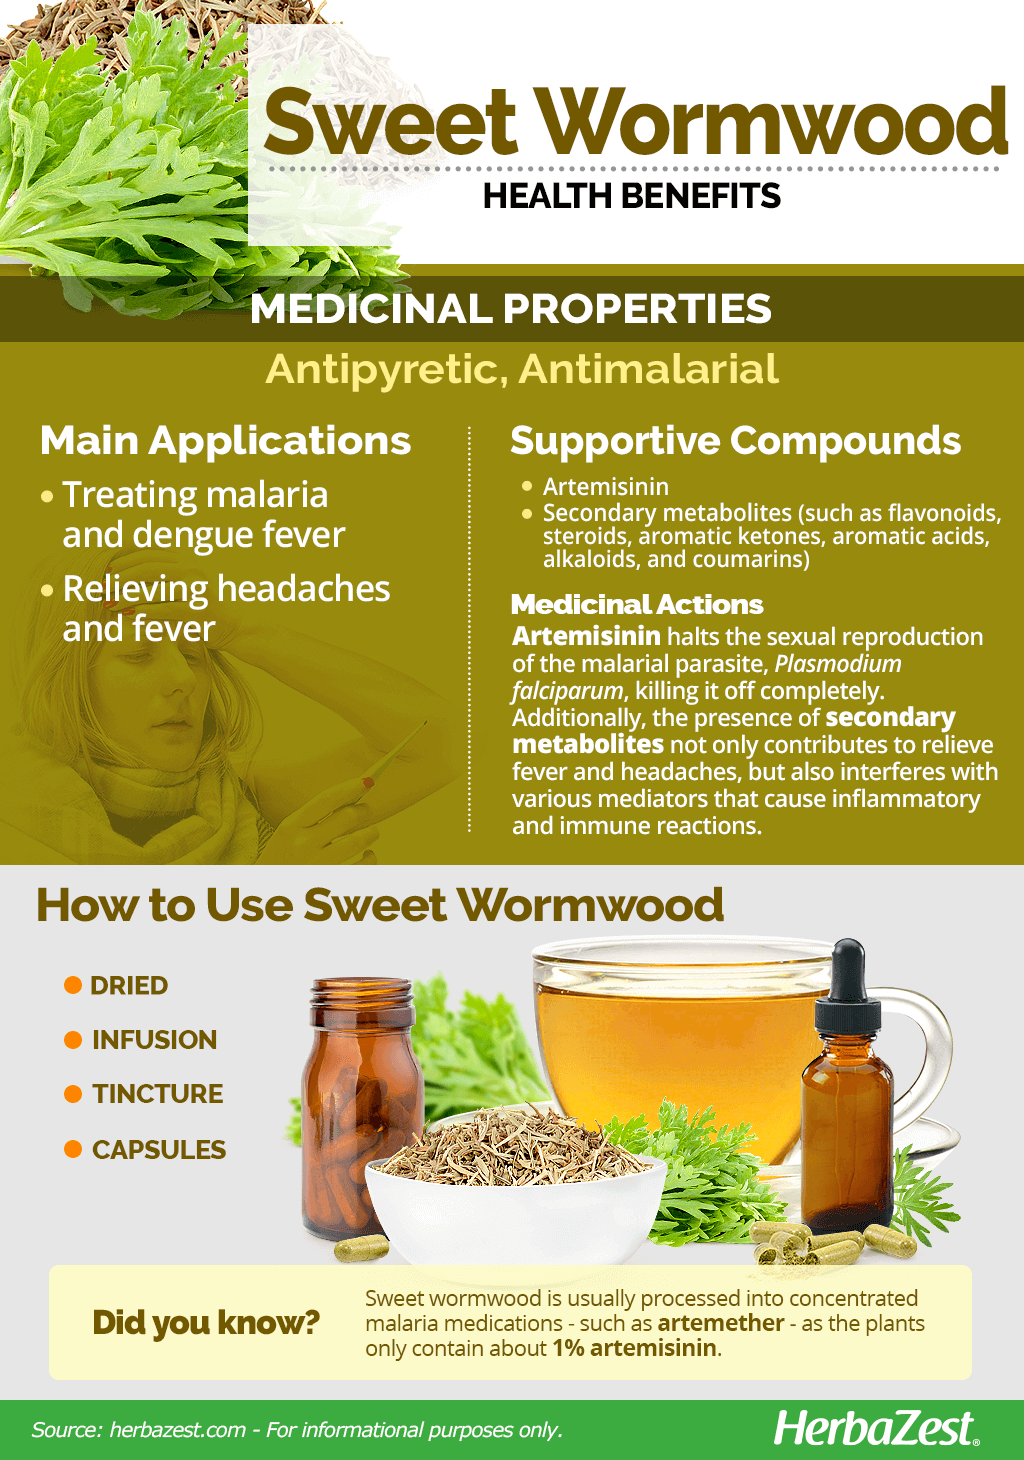 All About Sweet Wormwood